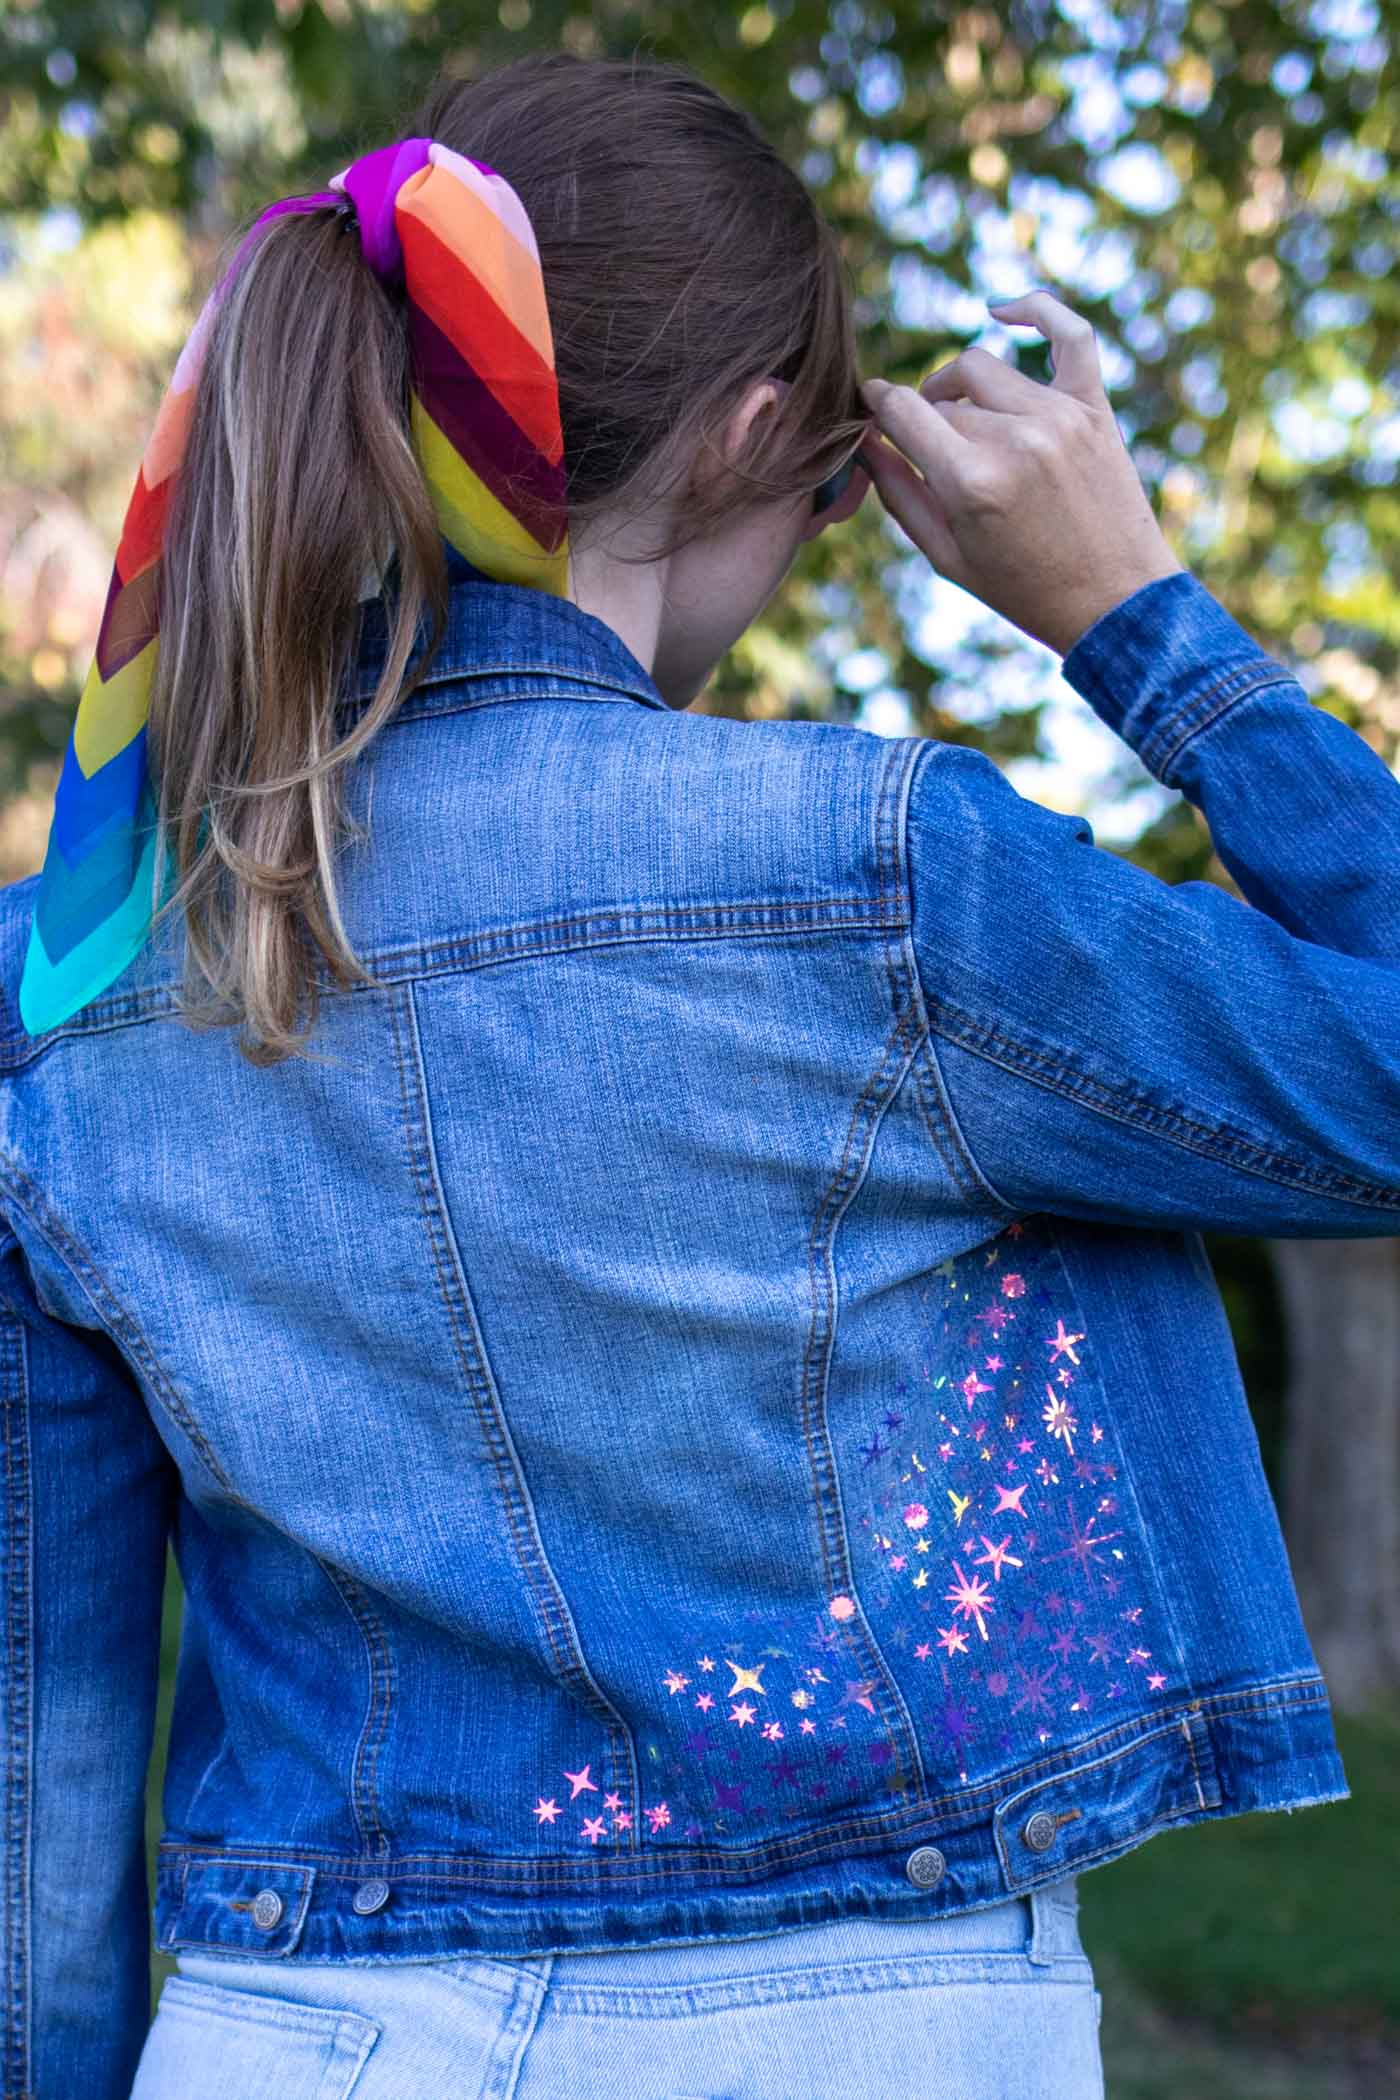 DIY Celestial Holographic Jacket Detail // How to use heat transfer vinyl or holographic iron-on vinyl to make a starry design to update a denim jacket! Download these FREE SVG files for Cricut to make a 90s-inspired holographic denim jacket for the fall // #ad #handmadewithjoann #diystyle #womensfashion #fabricdiy #irononvinyl #holographic #iridescent #freetemplate